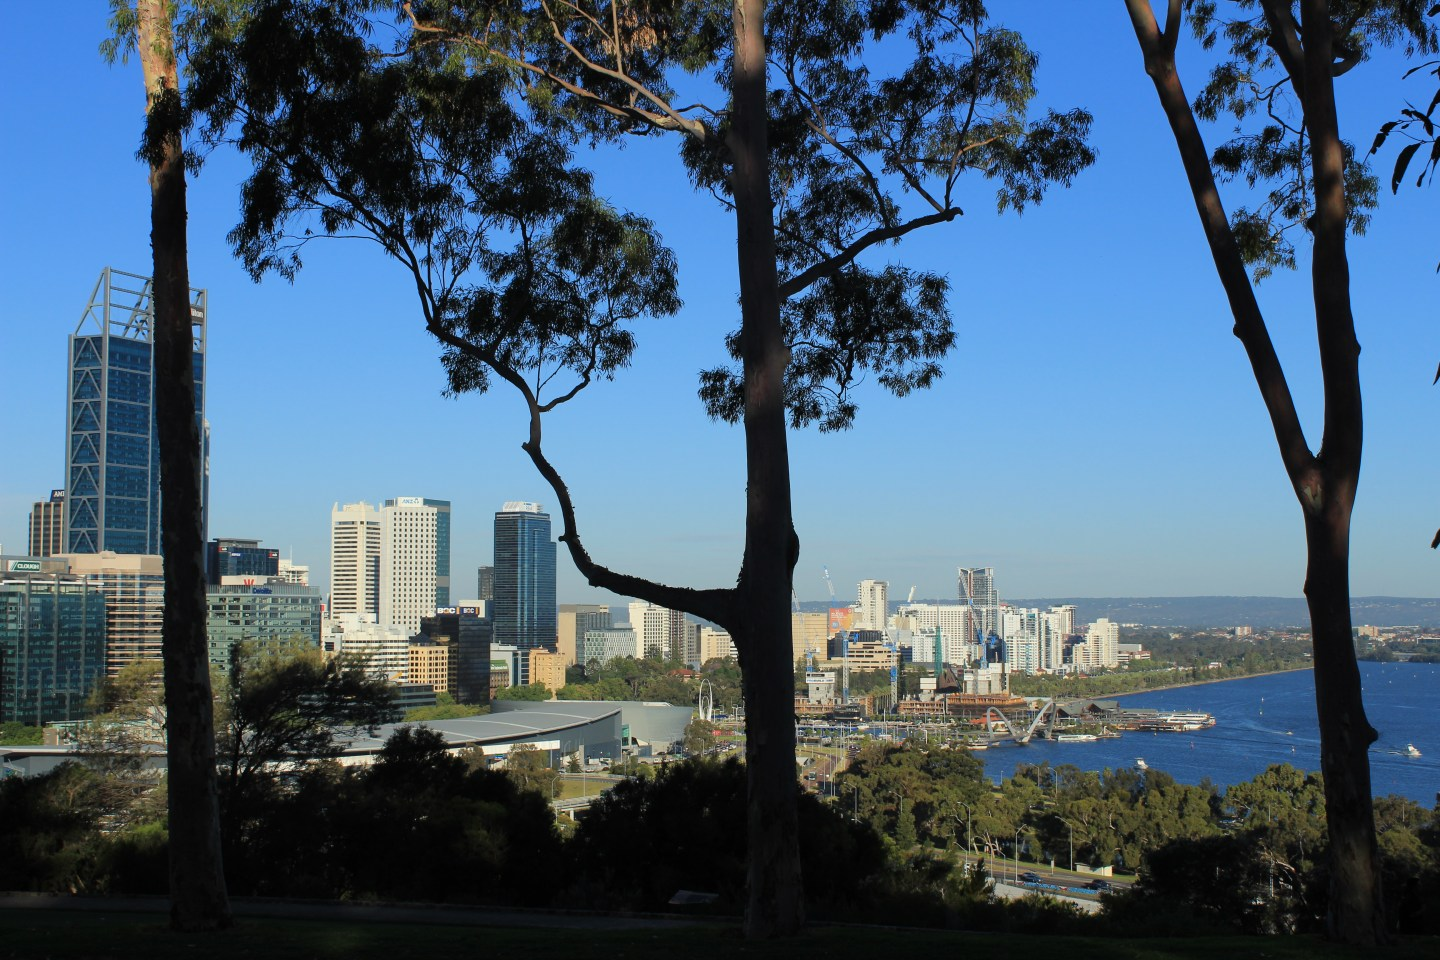 Perth city as viewed from above through silhouetted trees